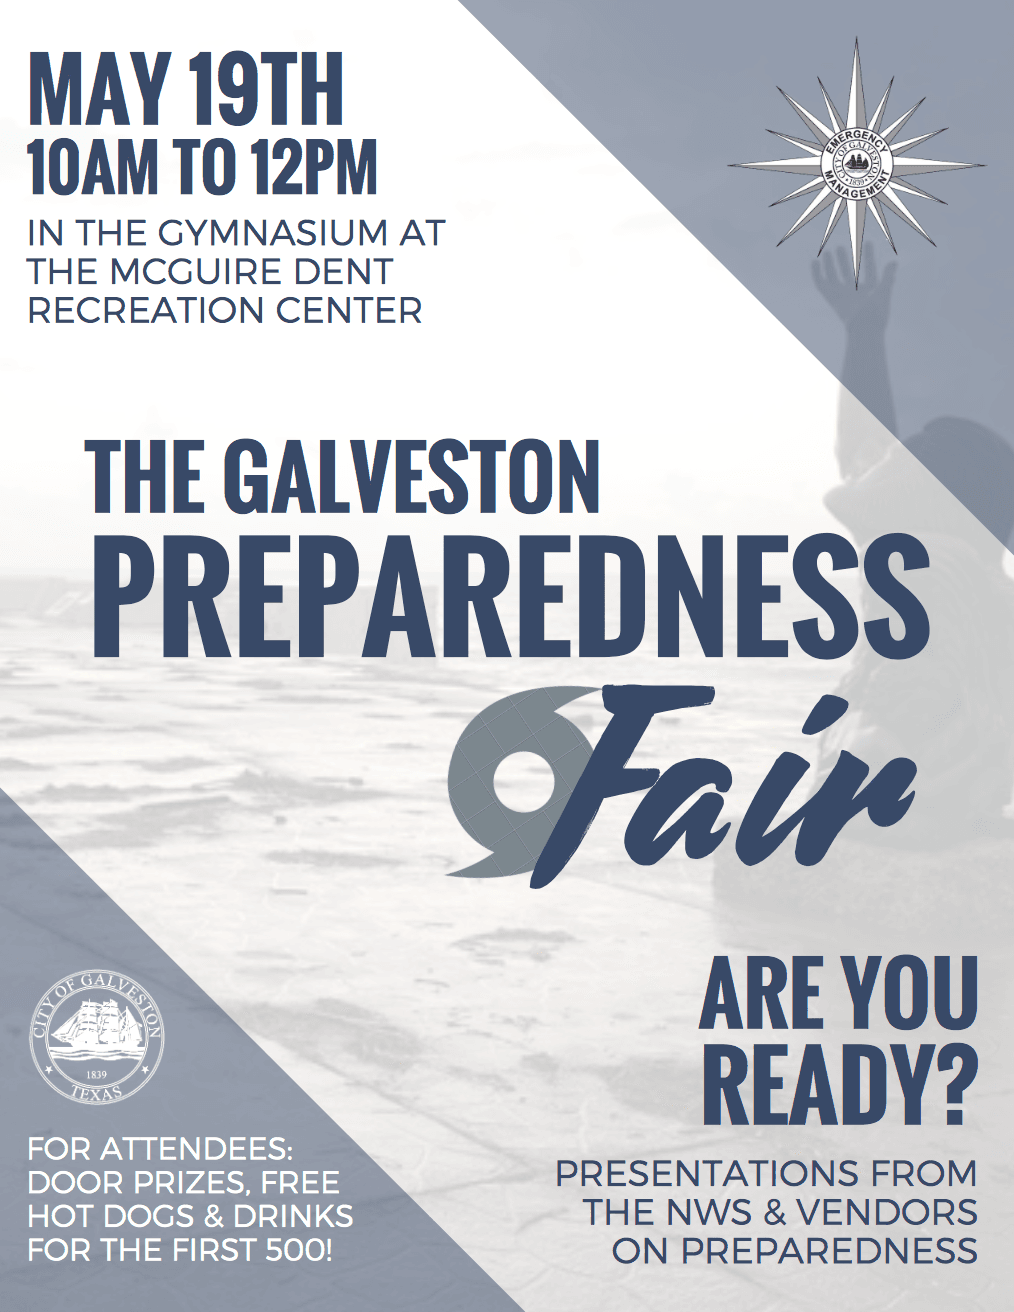 Galveston's Hurricane Preparedness Fair Set for Saturday, May 19th